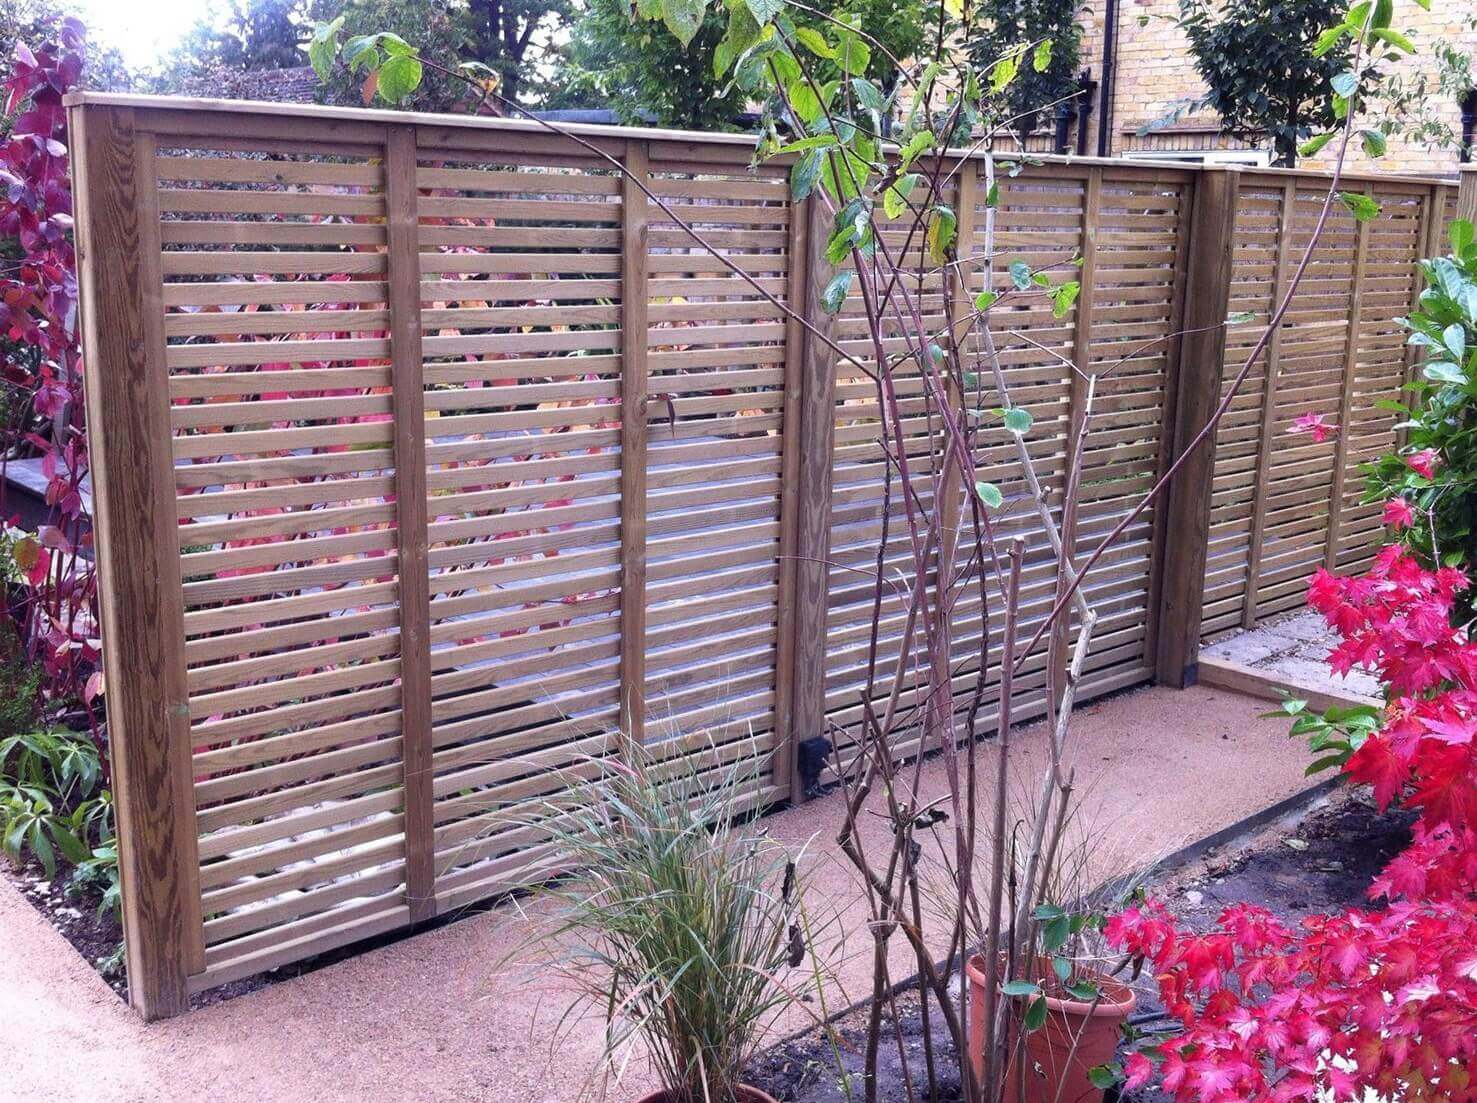 Venetian fence panels used as a garden screen